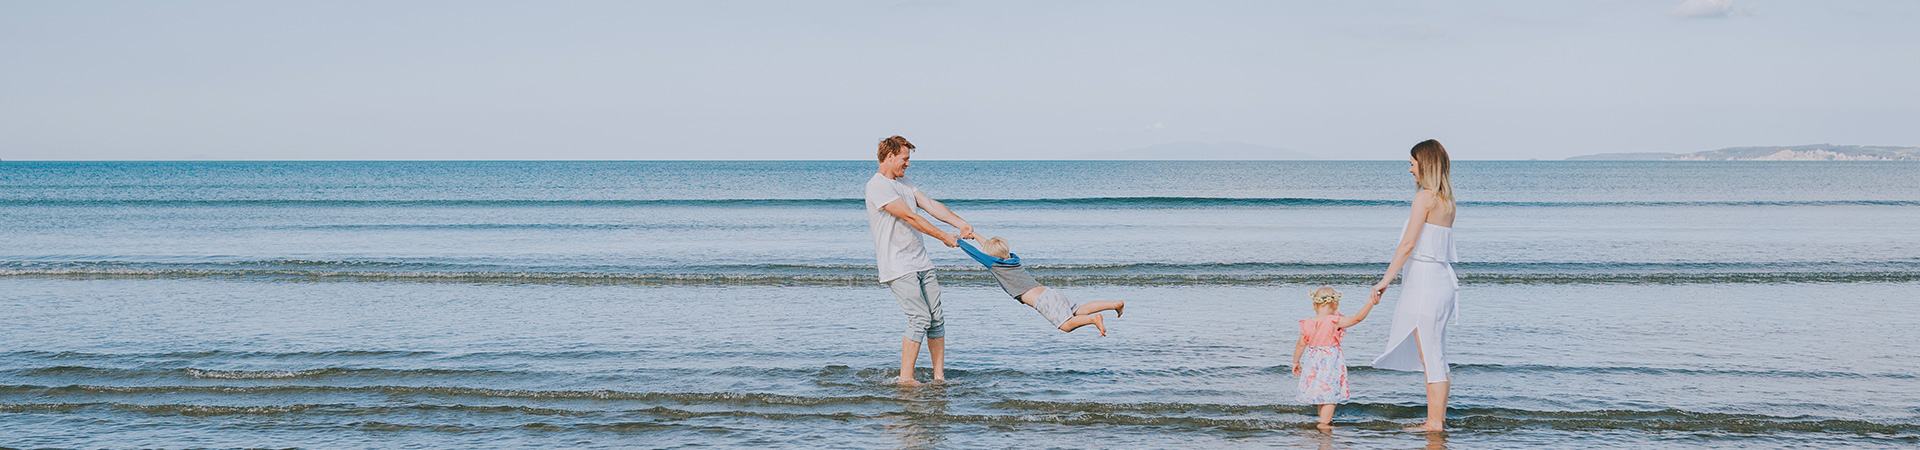 https://www.parentvillage.co.nz/uploads/images/beach-family-banner.jpg